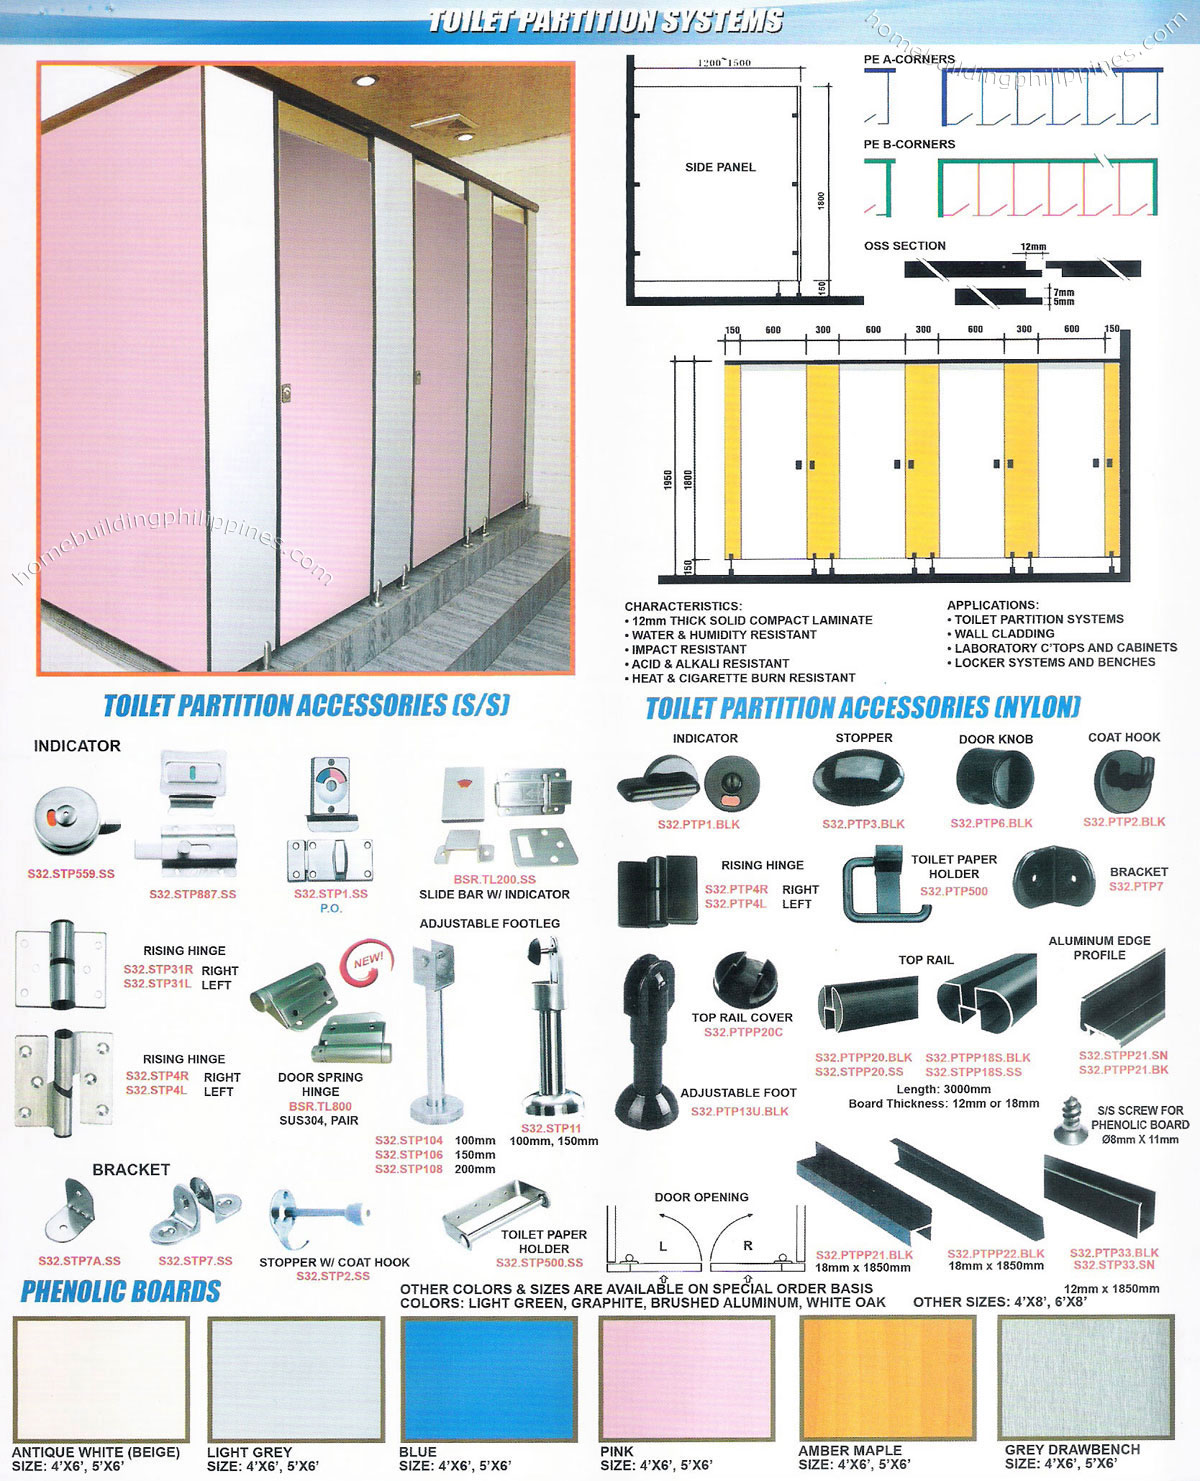 Bathroom Partition Accessories toilet partition systems & accessories philippines